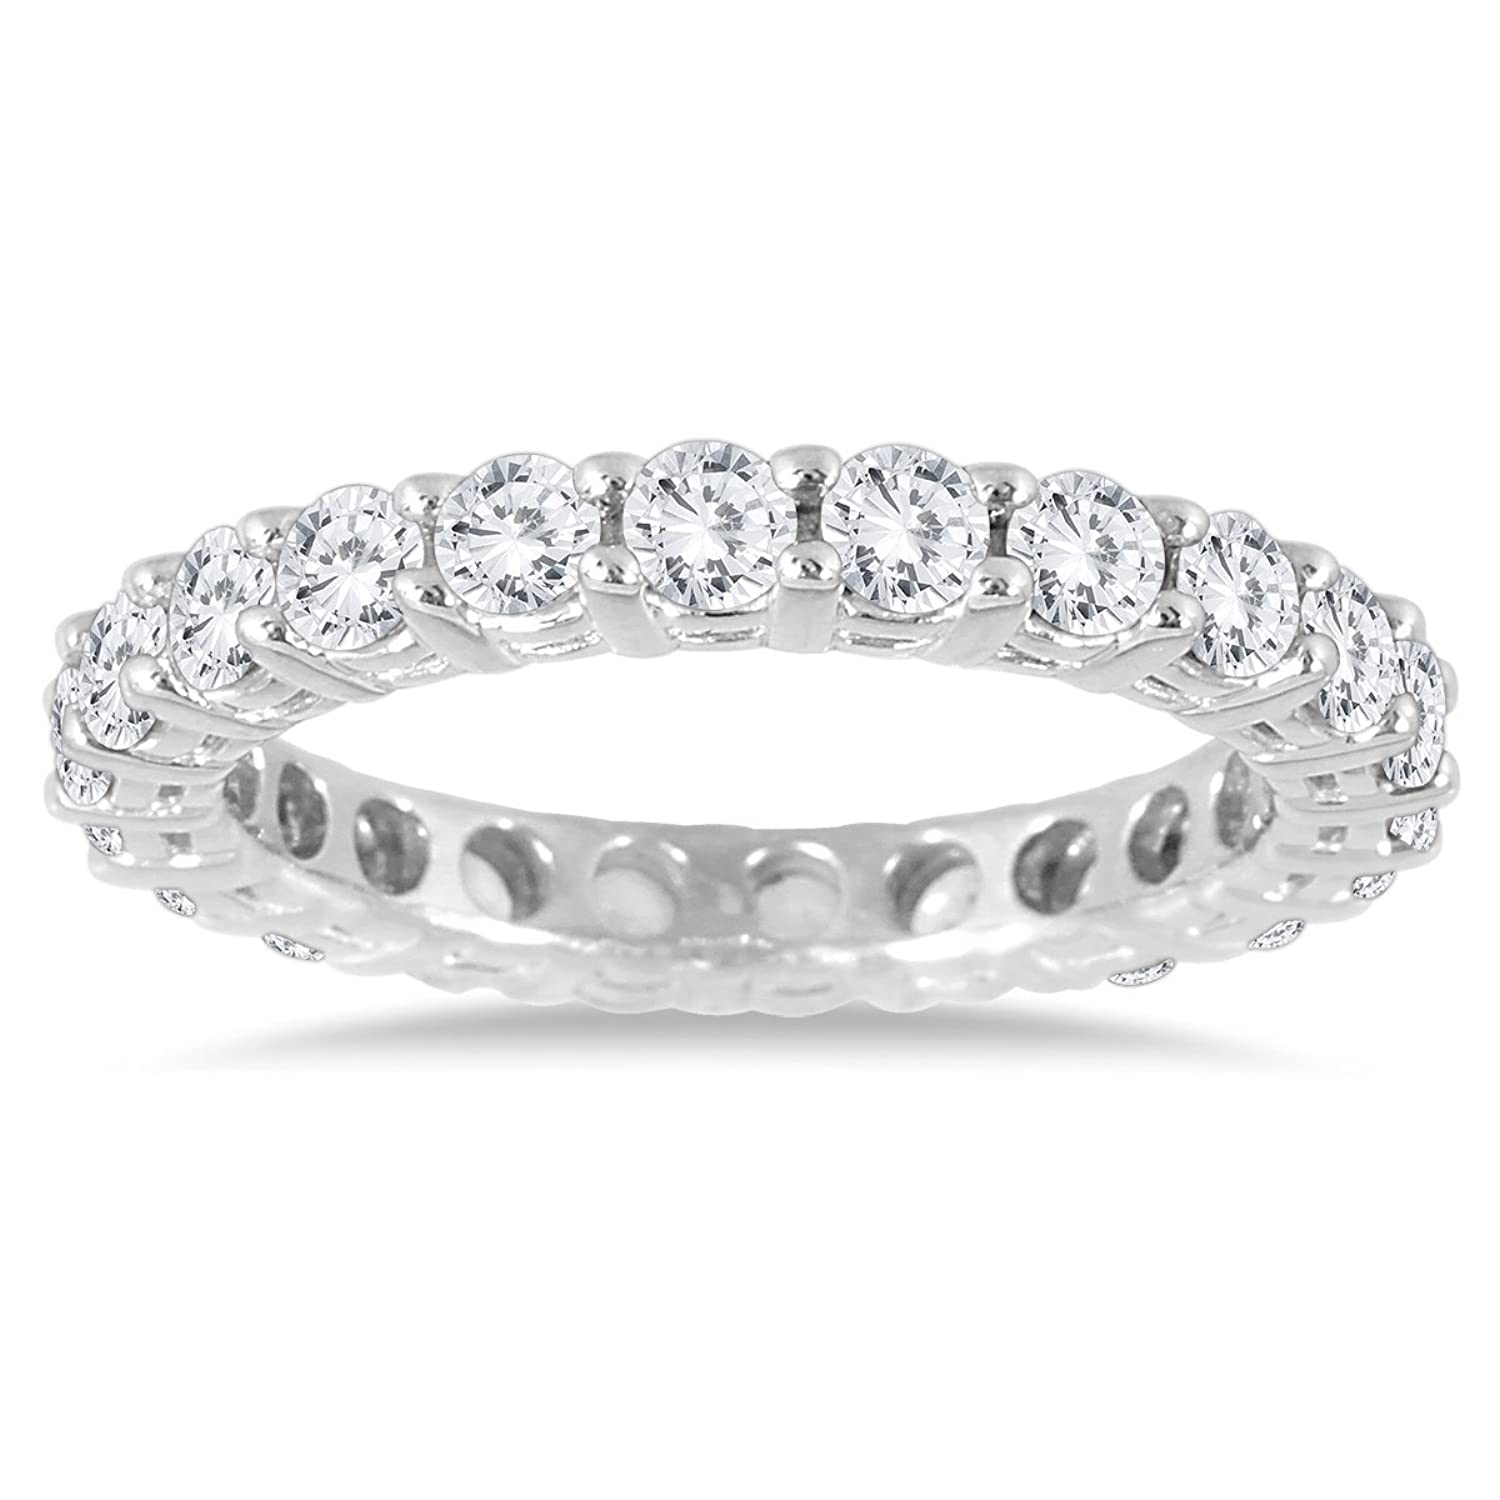 yg rings shashi diamond web eternity ring products jewellery shop